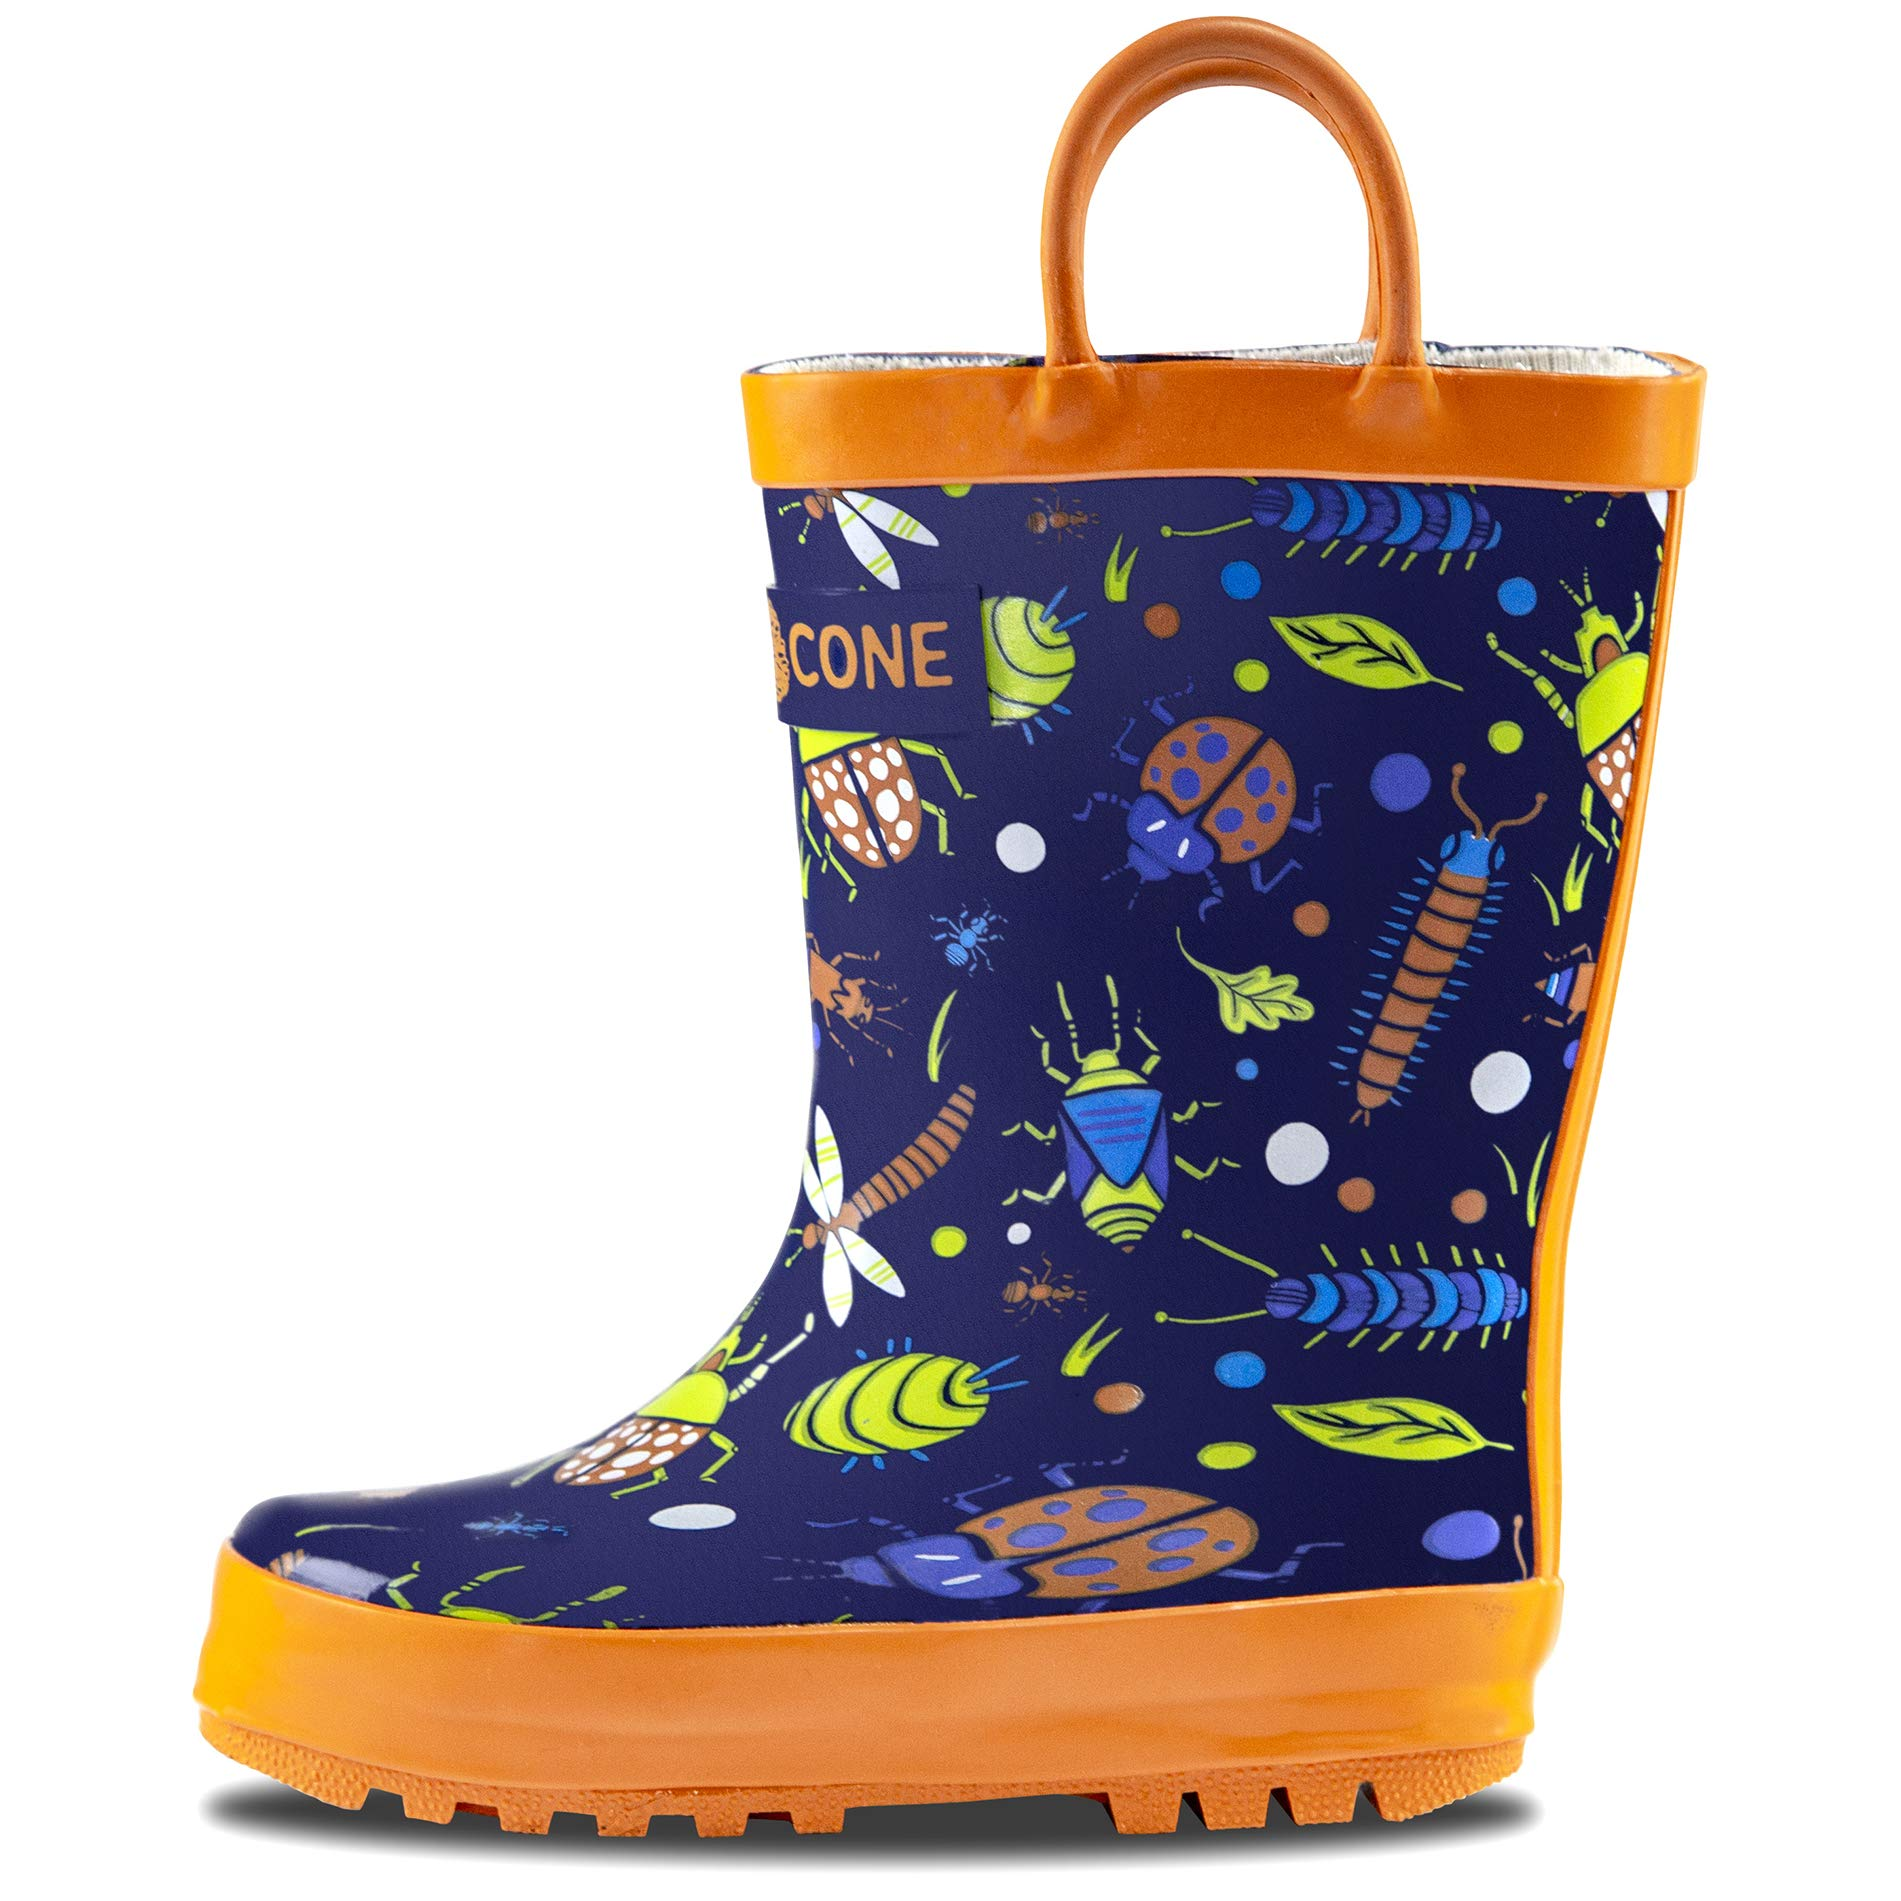 LONECONE Rain Boots with Easy-On Handles in Fun Patterns for Toddlers and Kids, Beetle Boots, Beetle Boots, Beetle Boots, Toddler 8